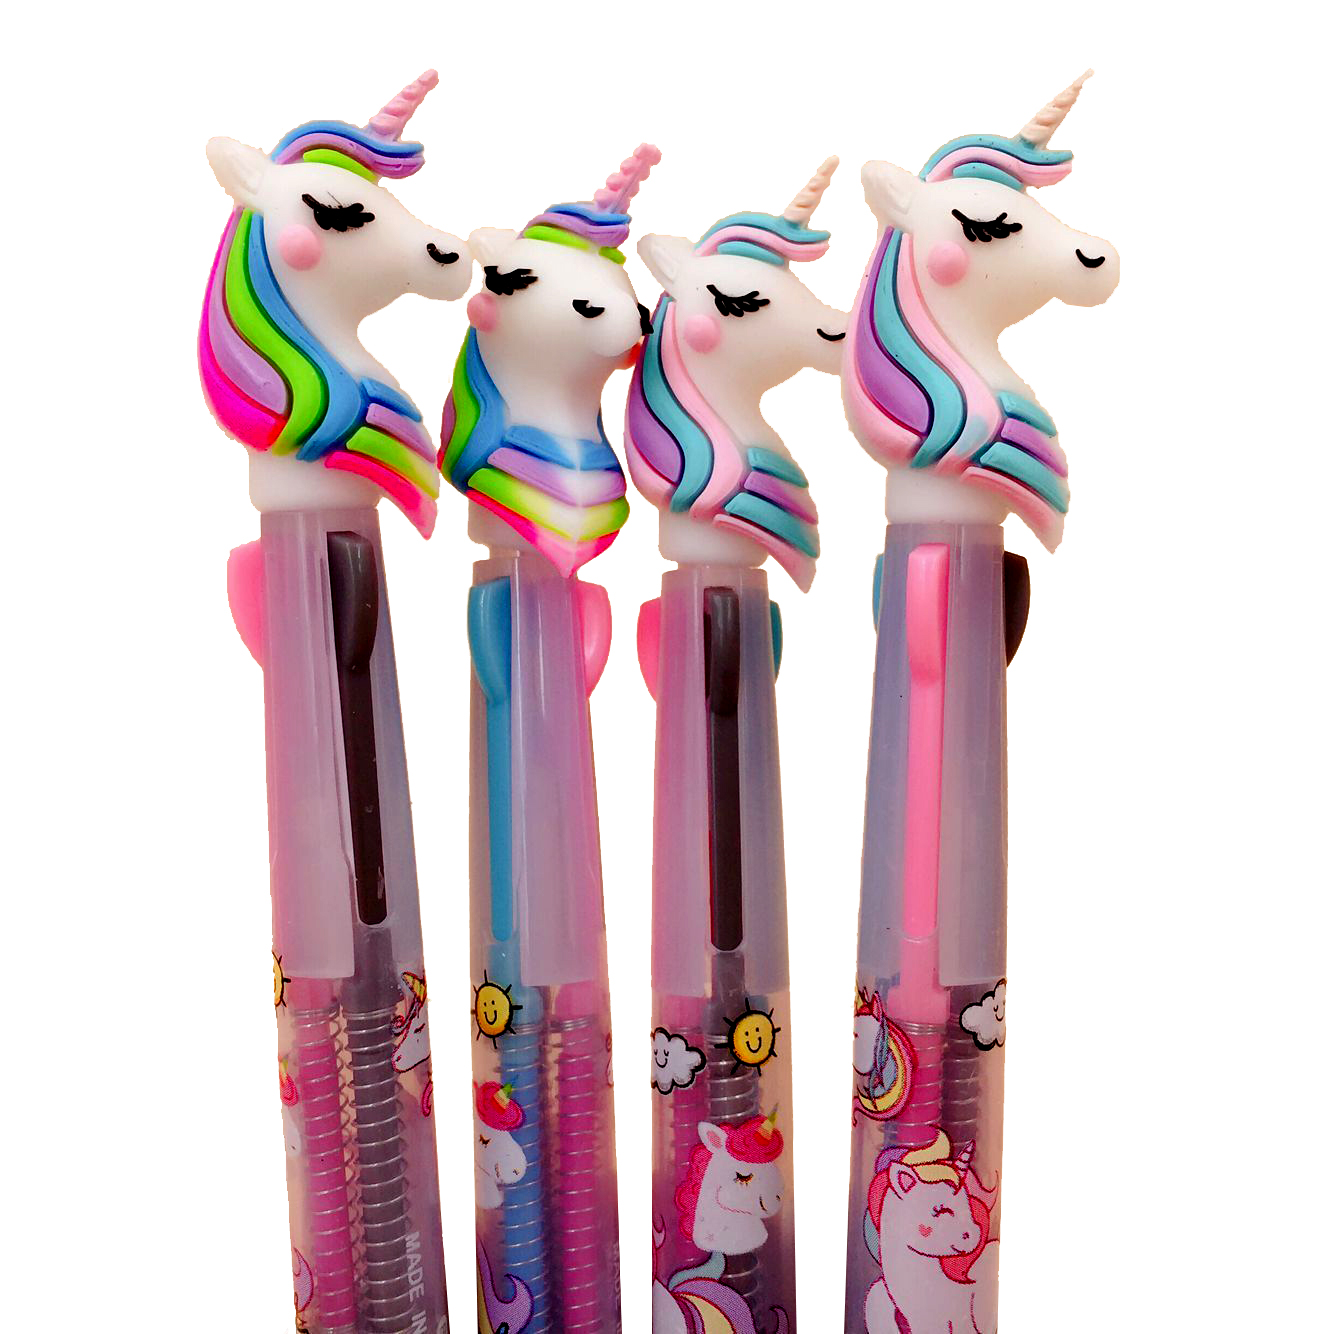 Cute Unicorn Ball <strong>Pen</strong> Cartoon Candy 3 Colors Doll Ballpoint <strong>Pen</strong>